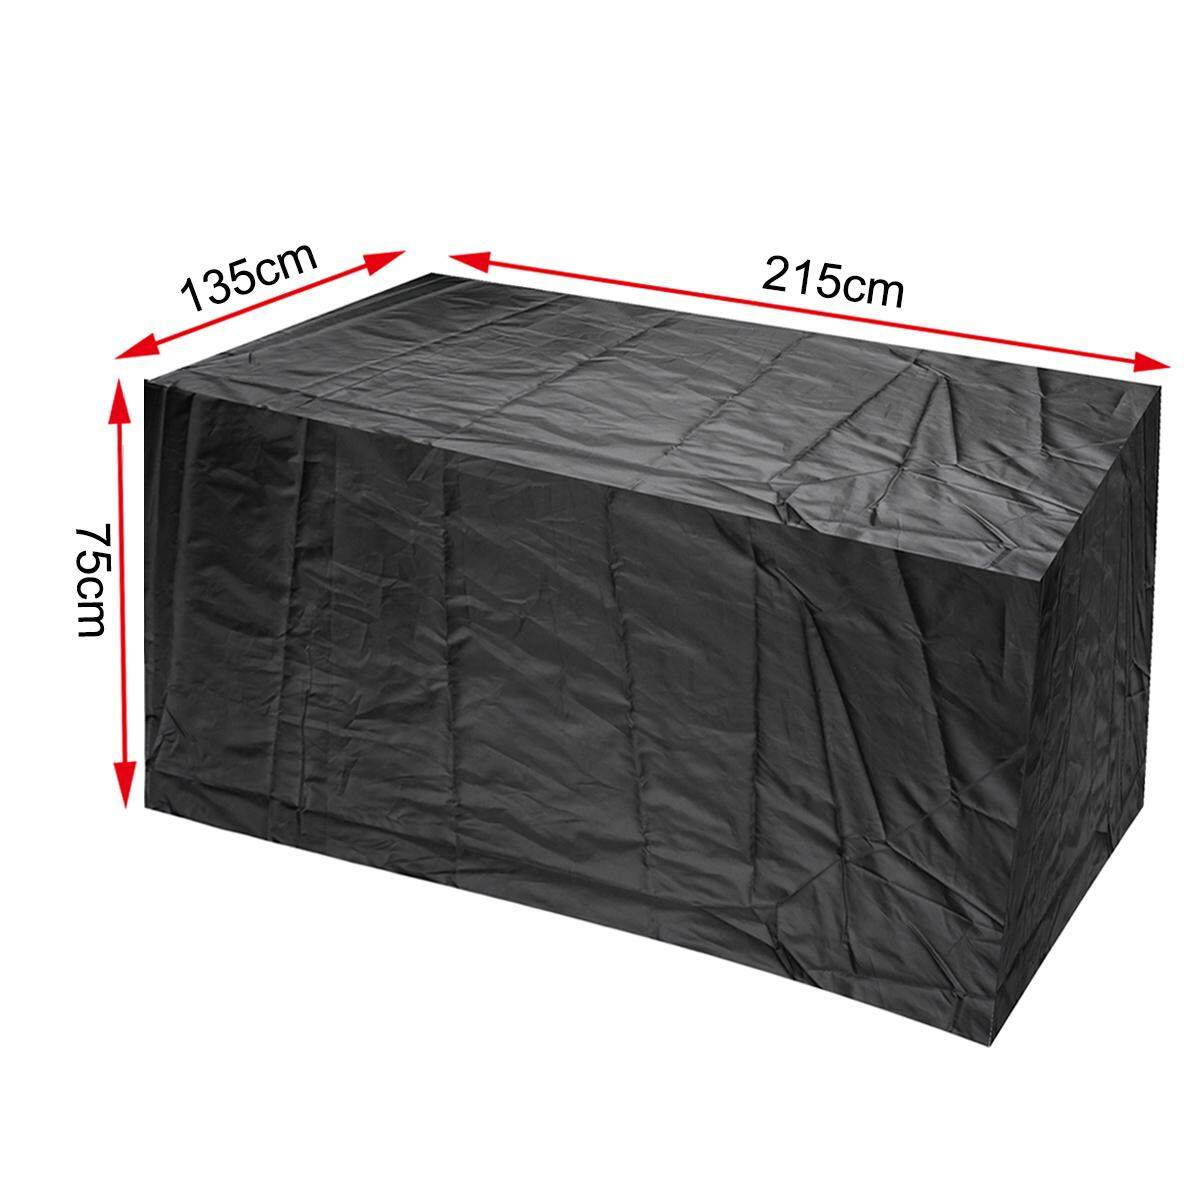 Outdoor Furniture Cover Waterproof Rectangular Table Protective Cover [215*135*75cm] - intl